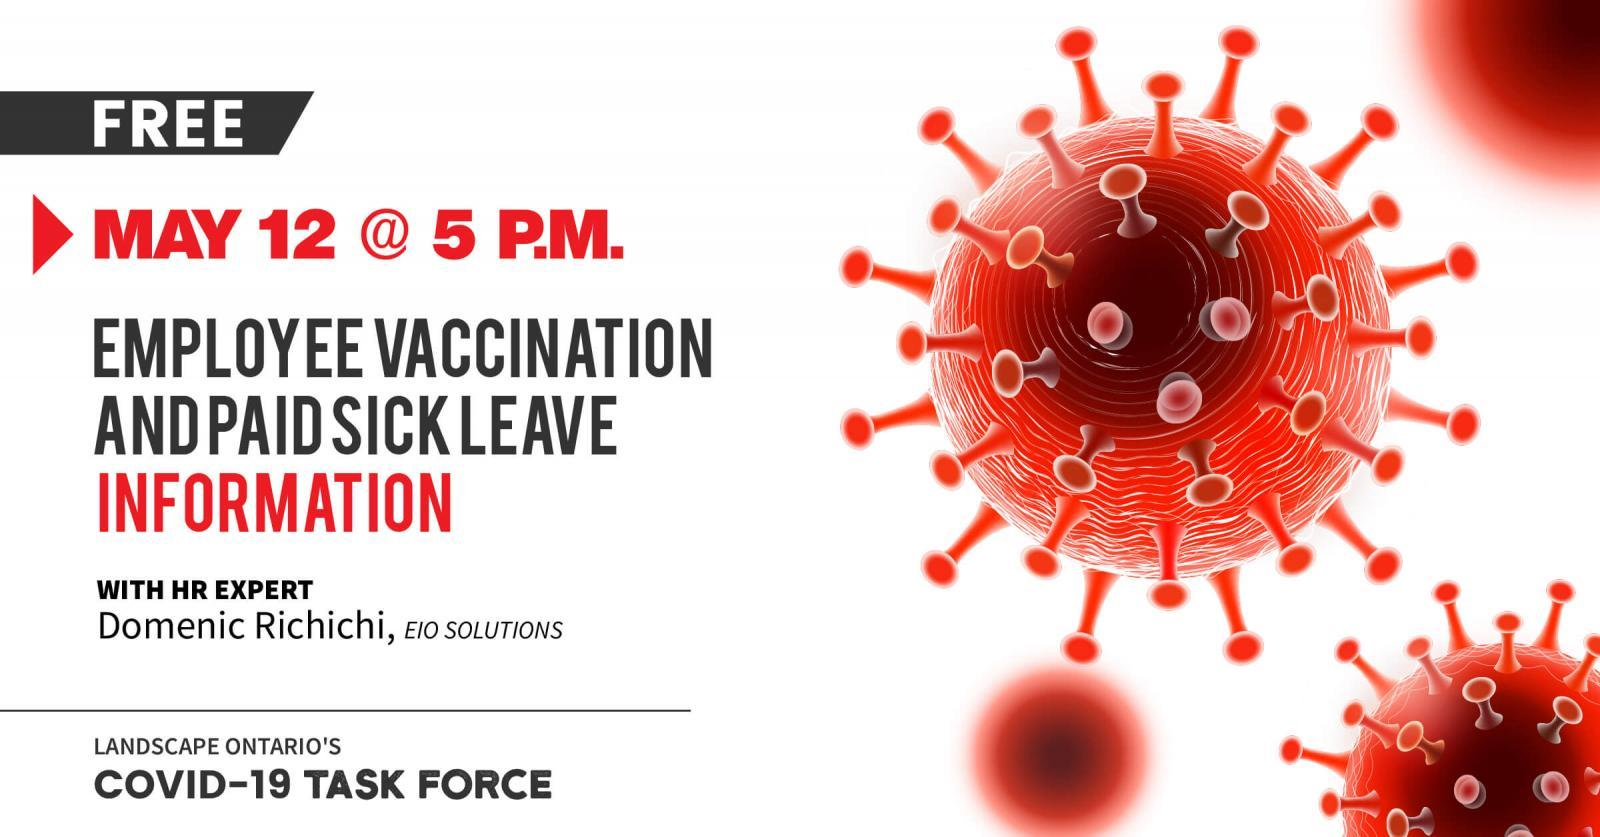 Employee Vaccination and Paid Sick Leave Information